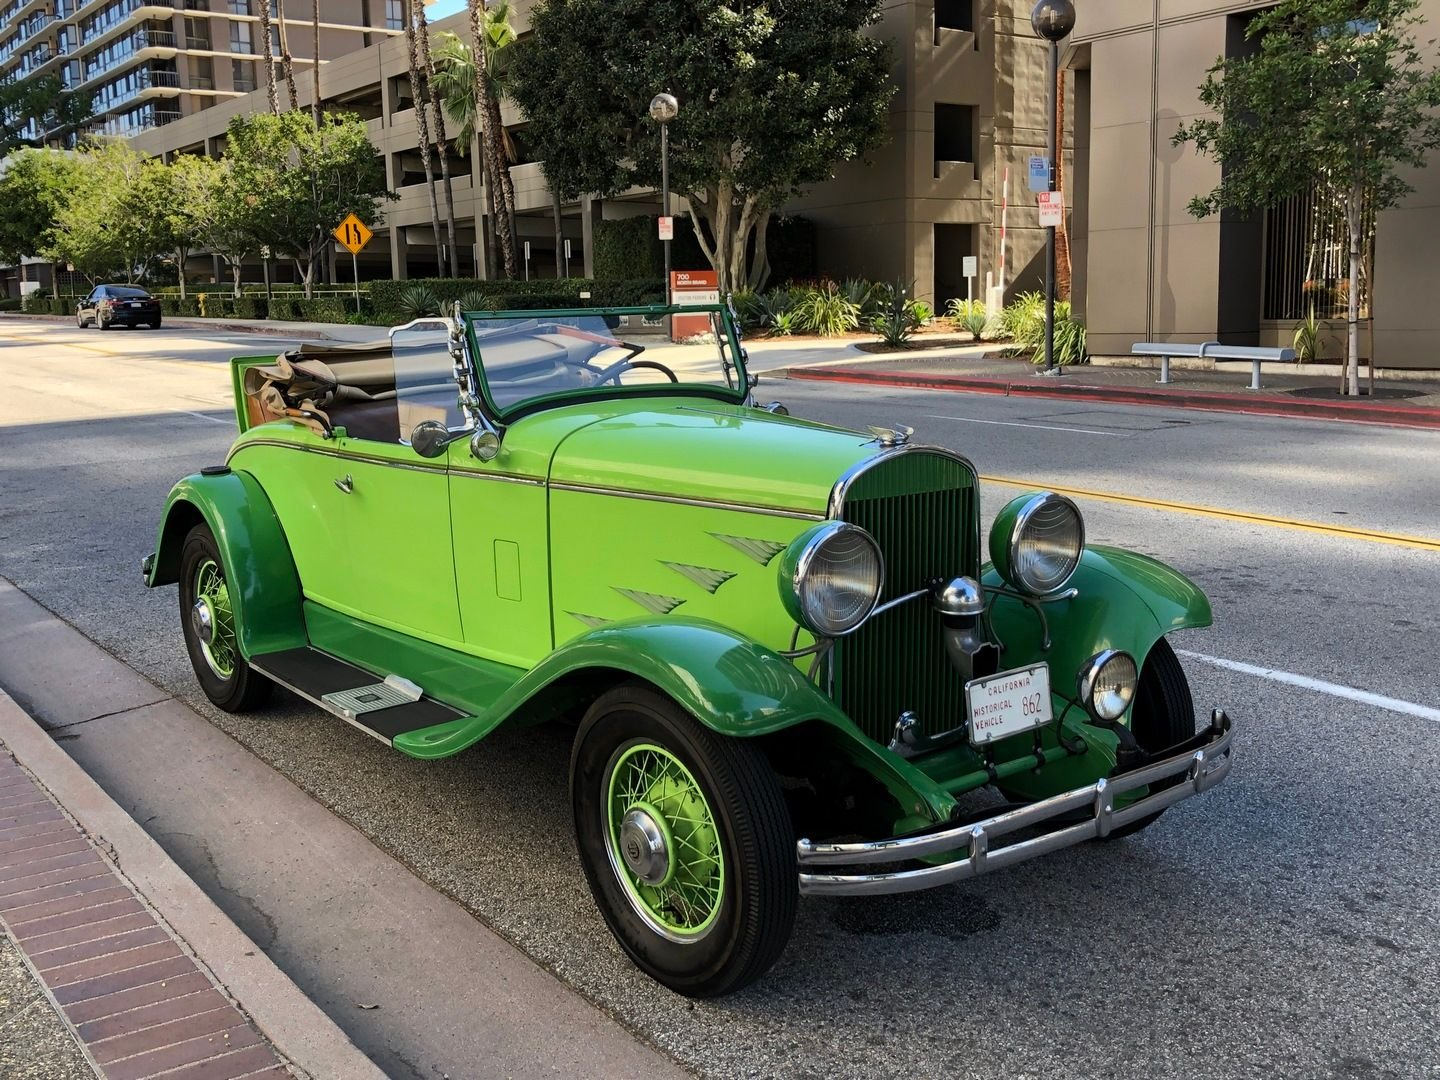 1930 Chrysler Series 70